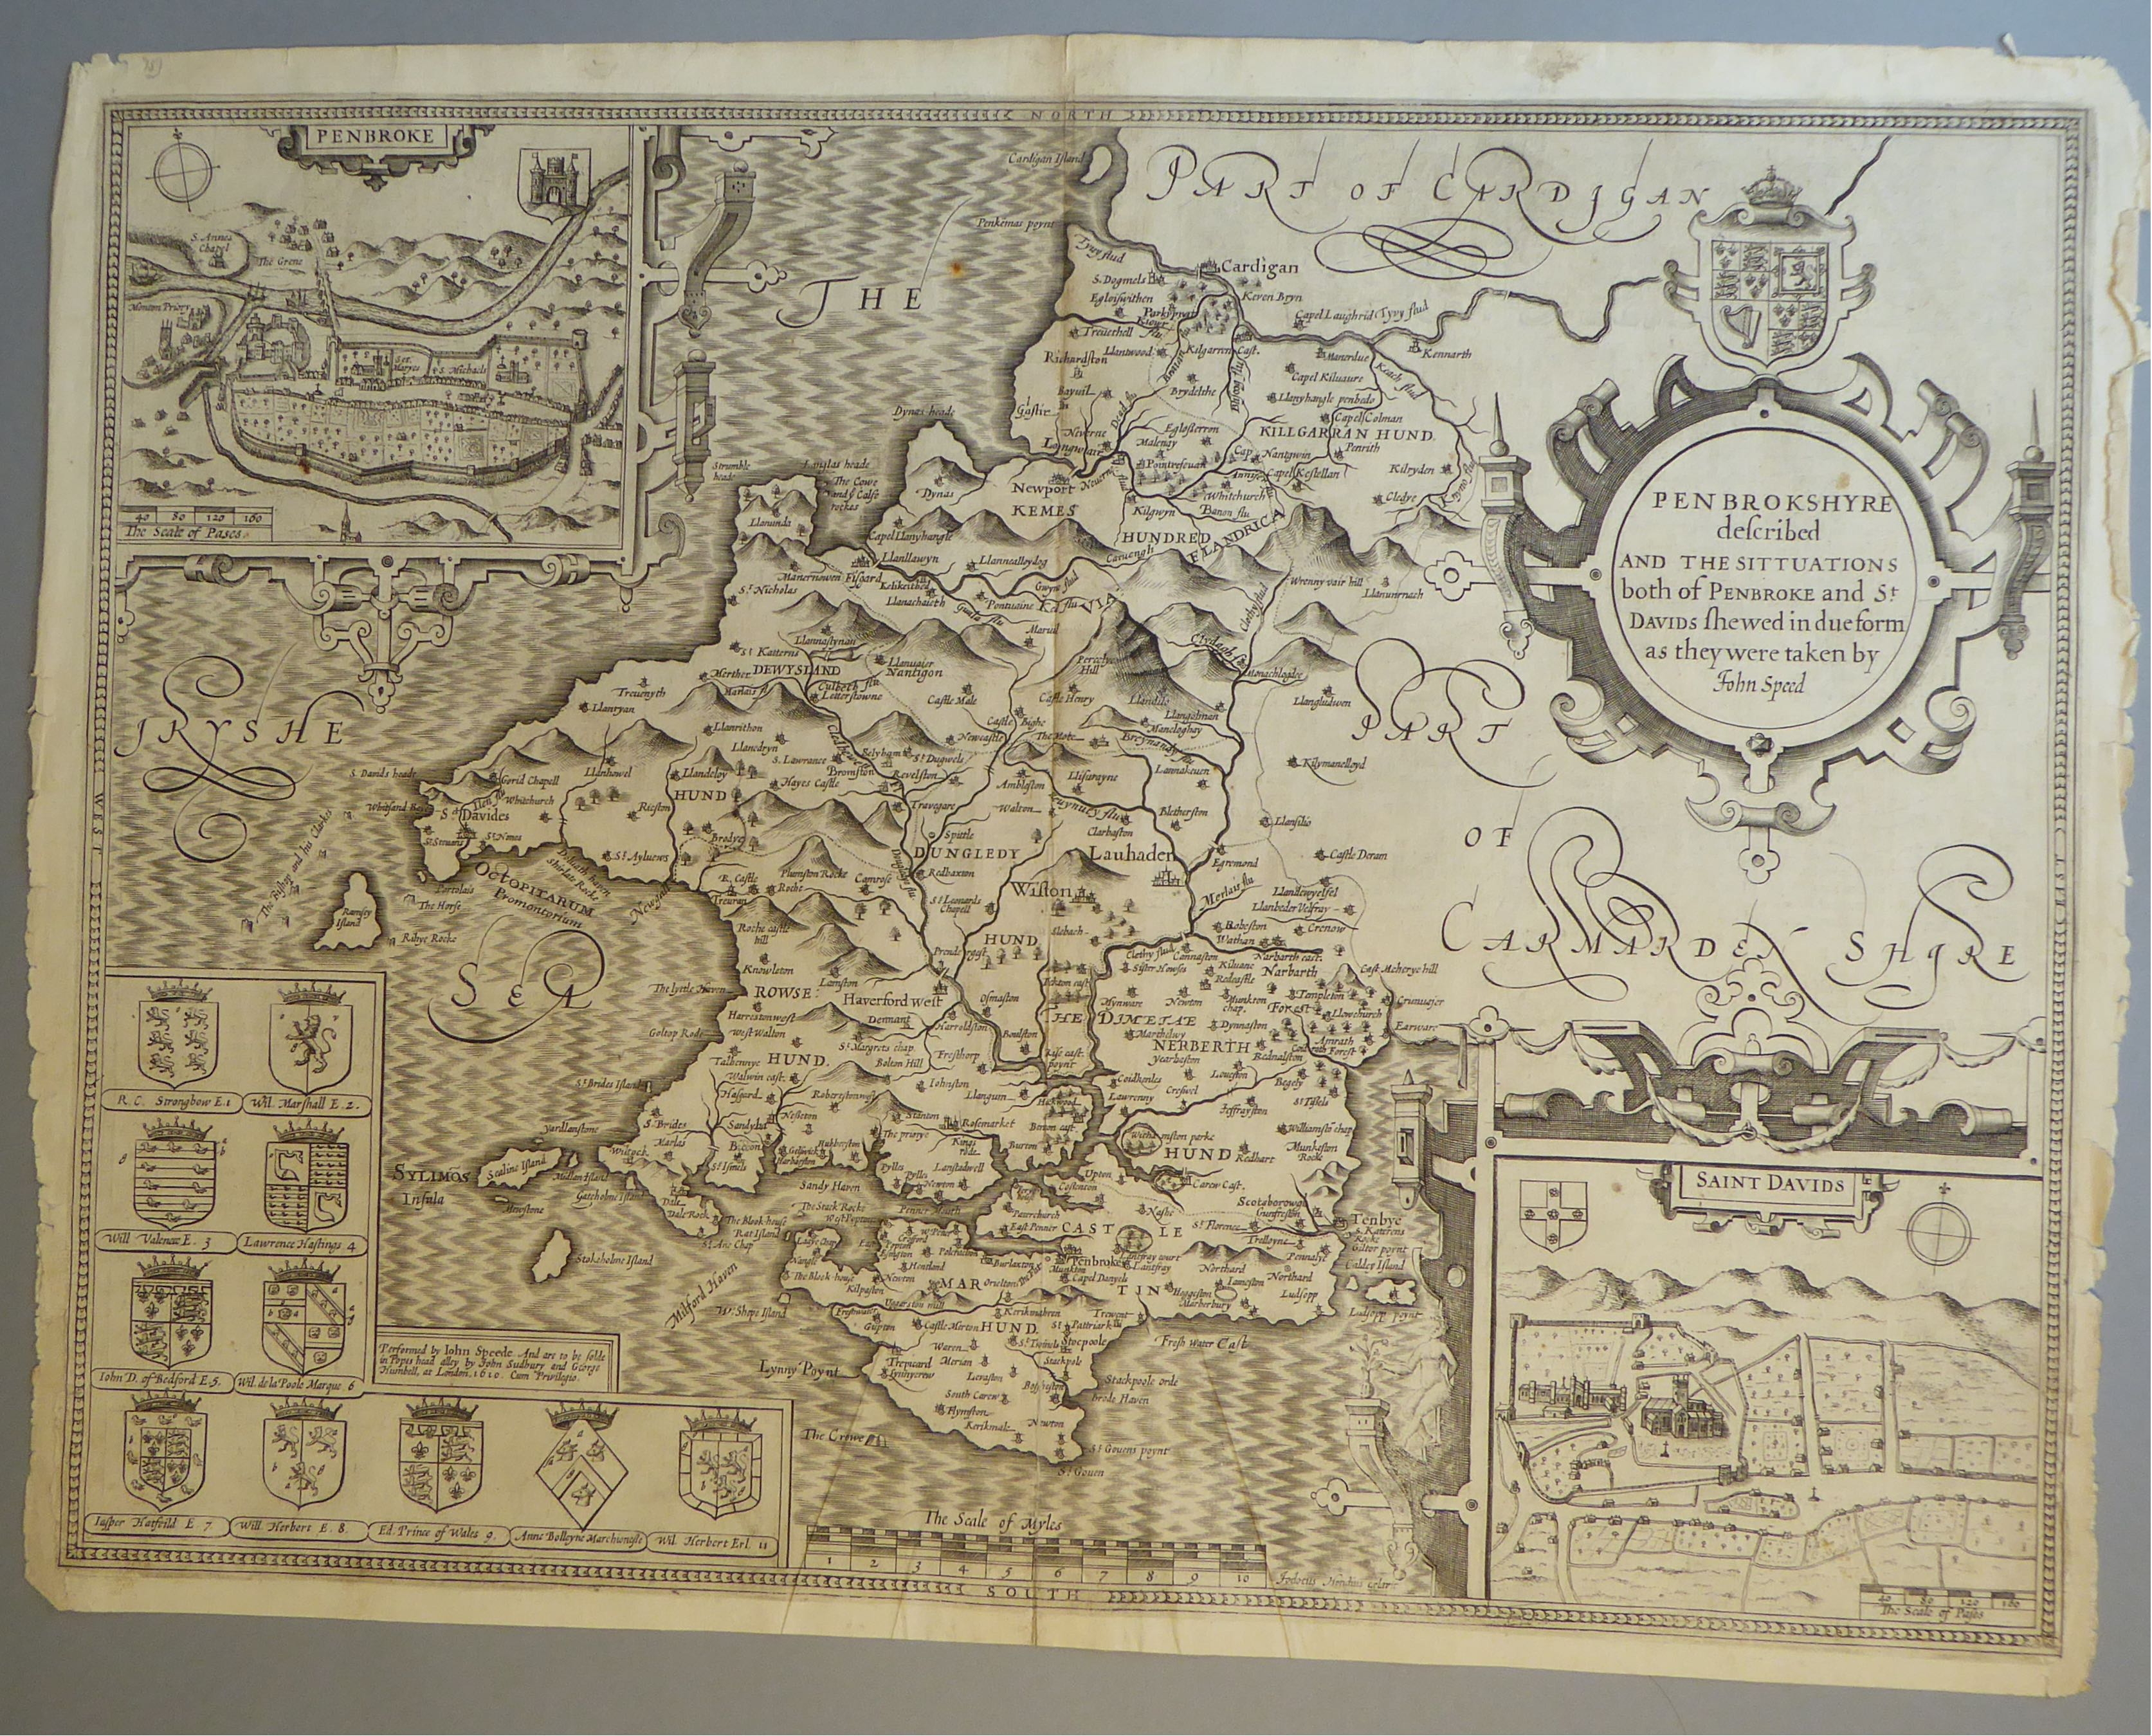 Lot 30 - A C17th Black & White copper engraved map of Pembrokeshire by John Speed, c1627